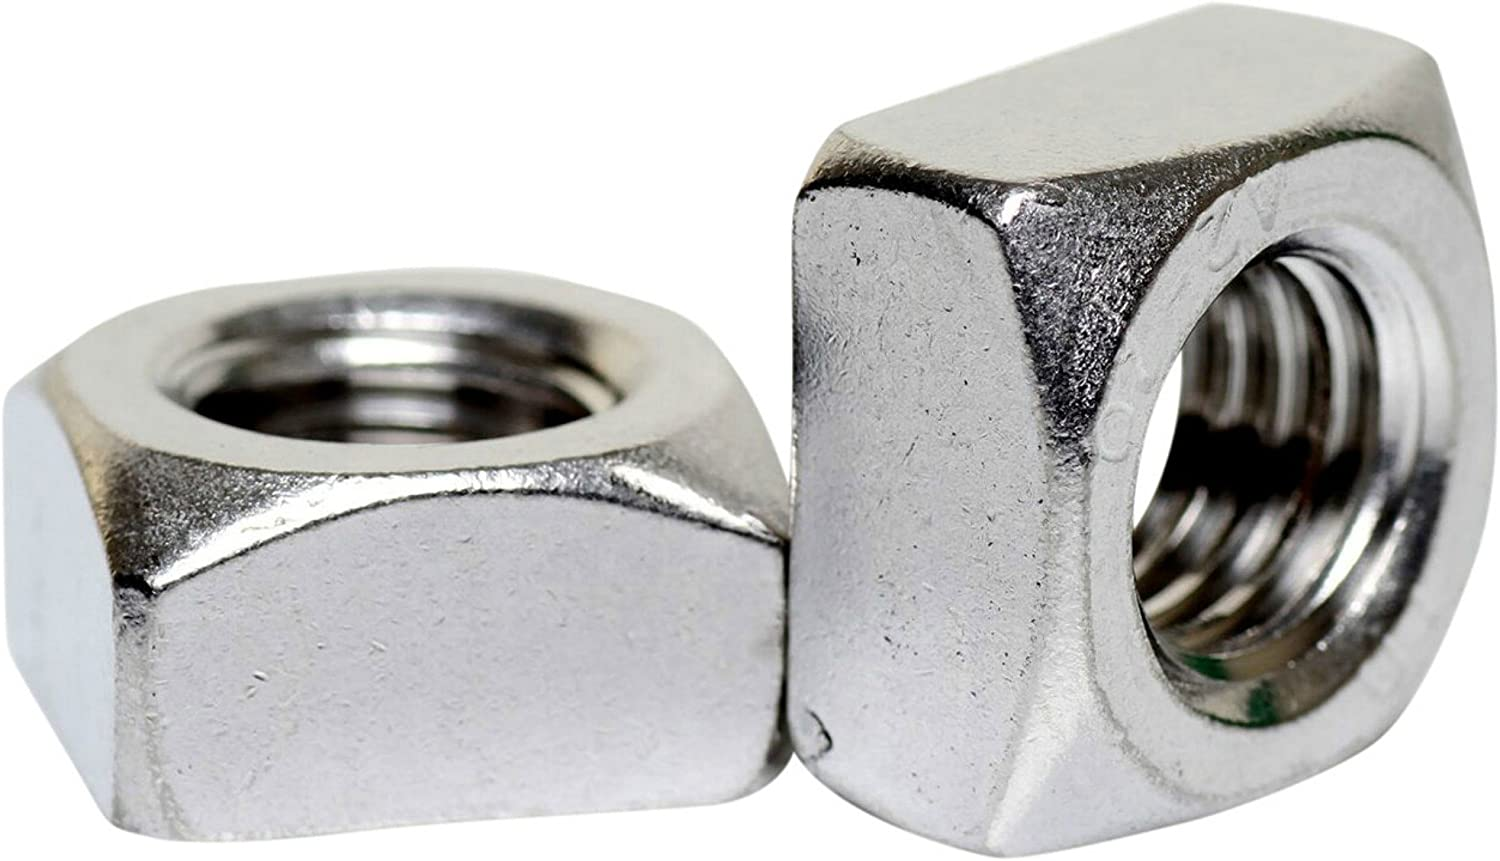 A2 Stainless Steel Chamfered Thick Square Nuts DIN 557 DIN 557 M5-5 Pack